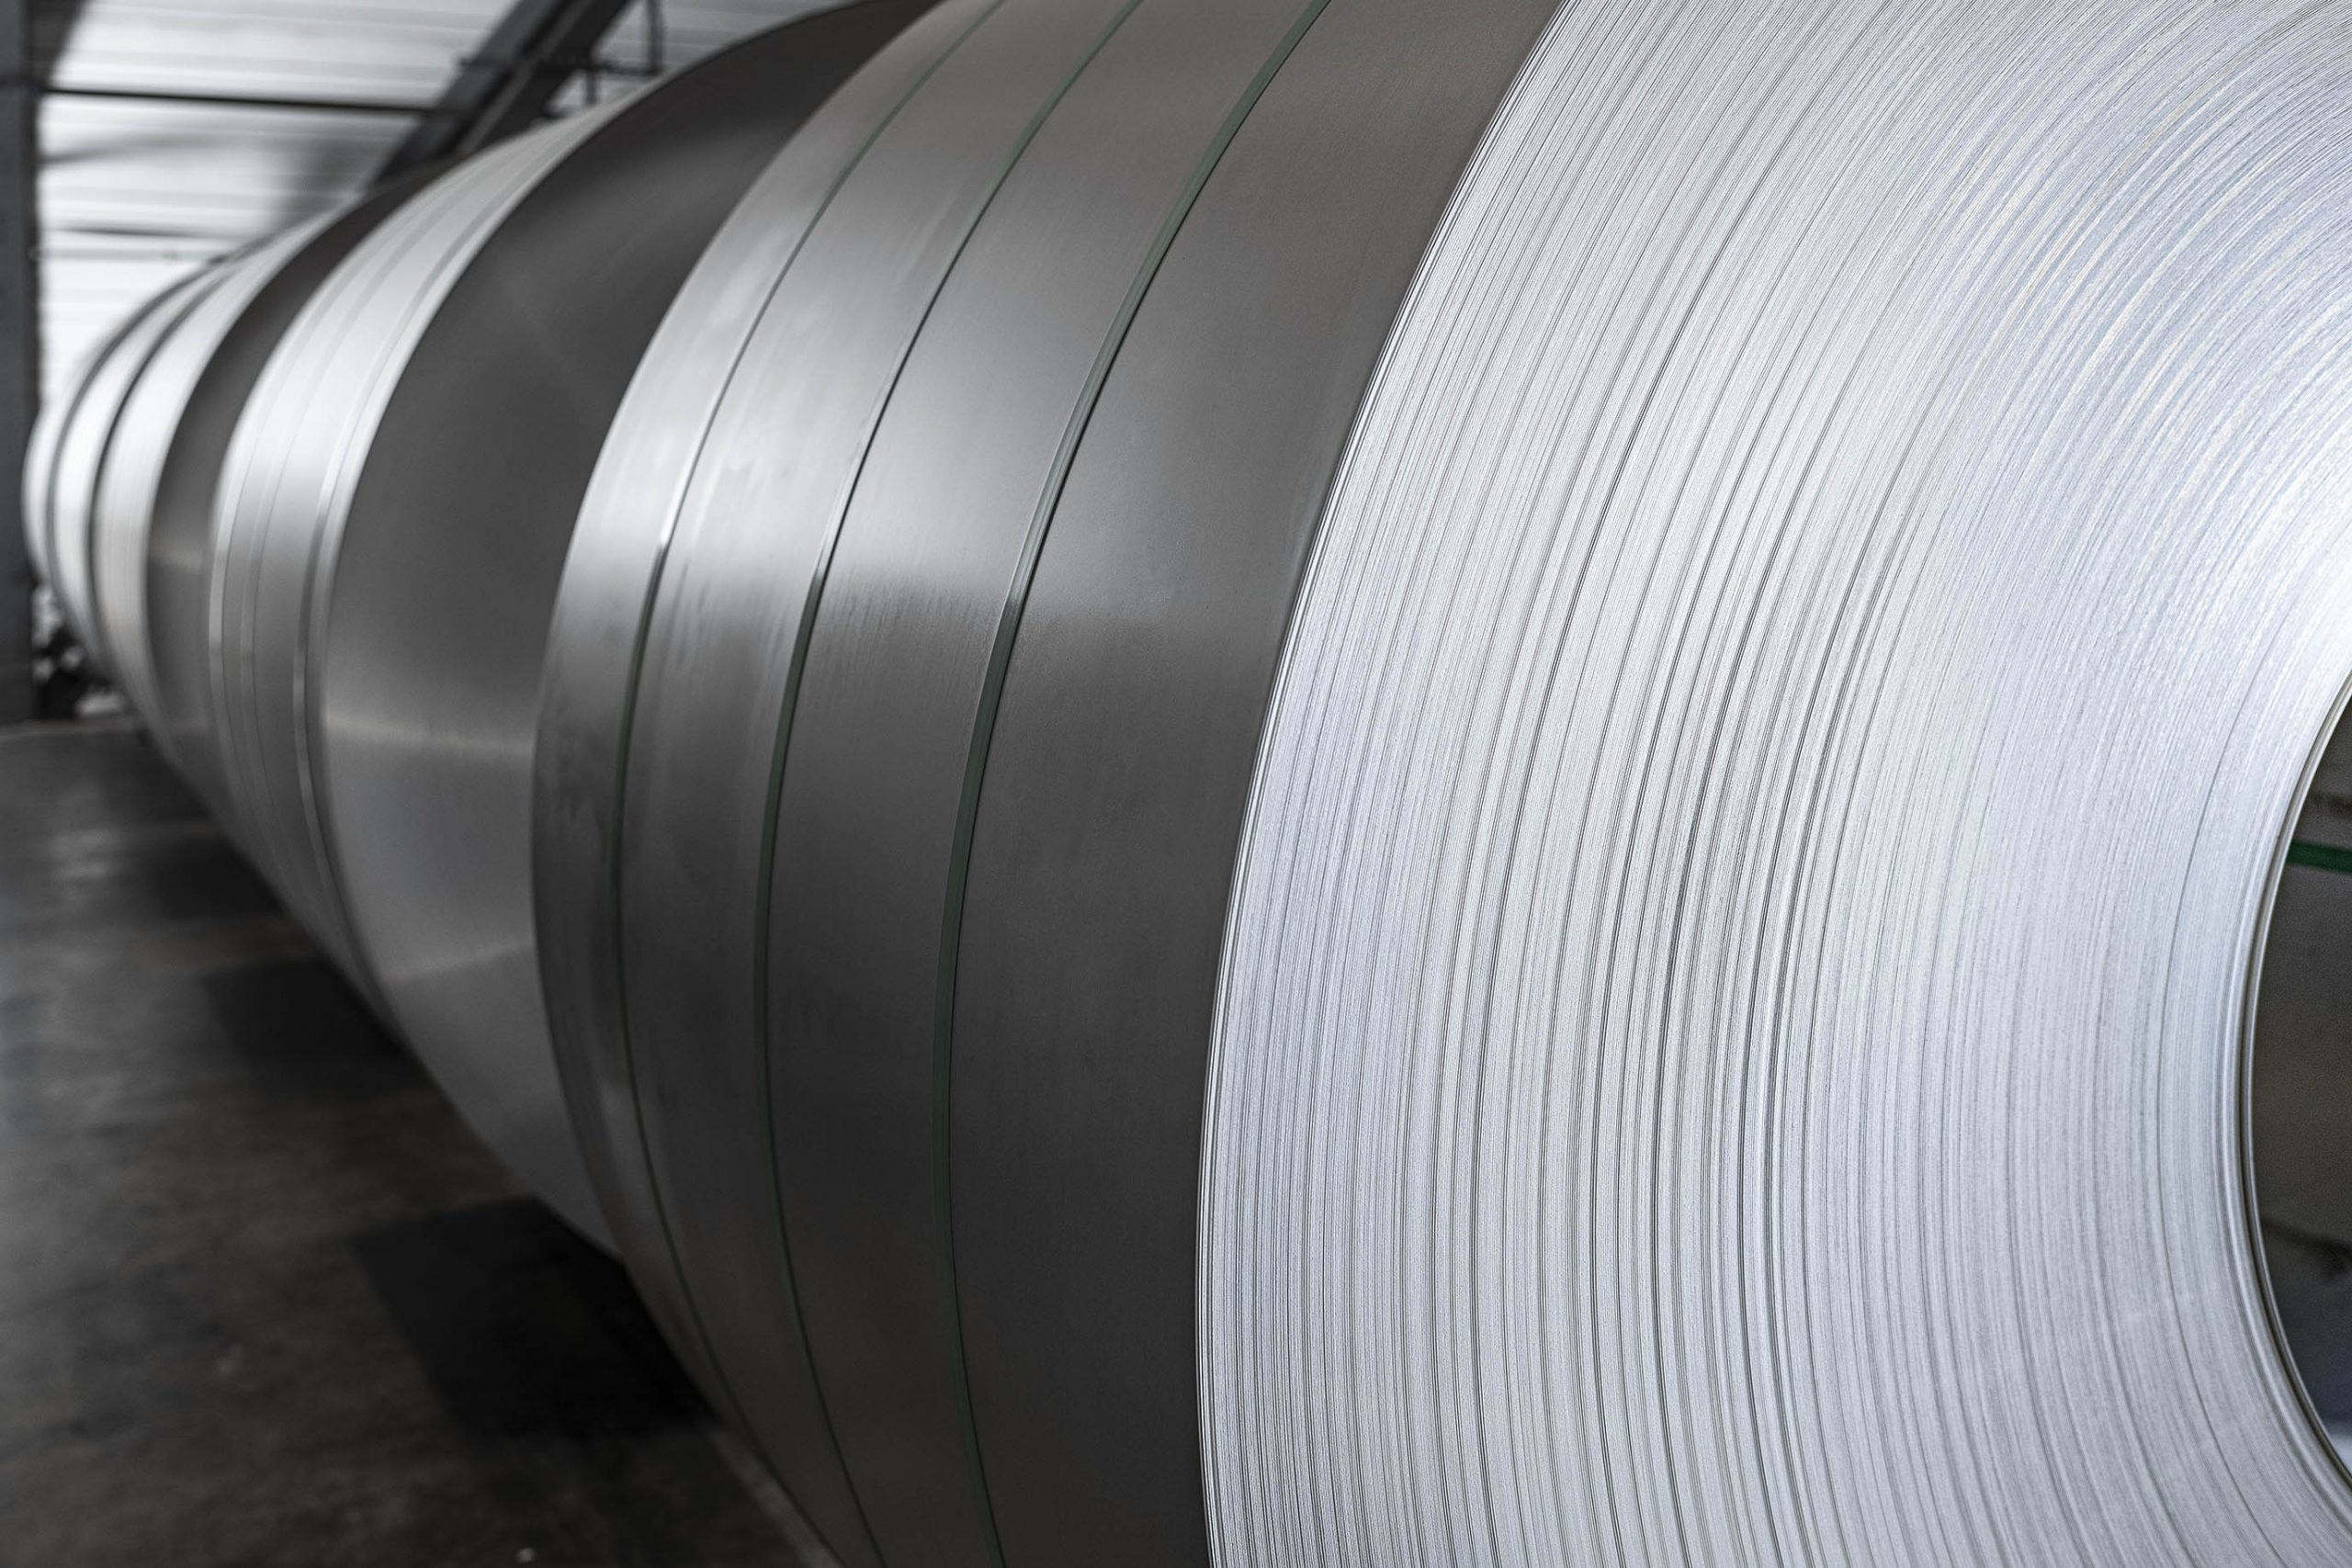 ALVANCE Aluminium Group completes acquisition of Duffel recycling and rolling mill in Belgium